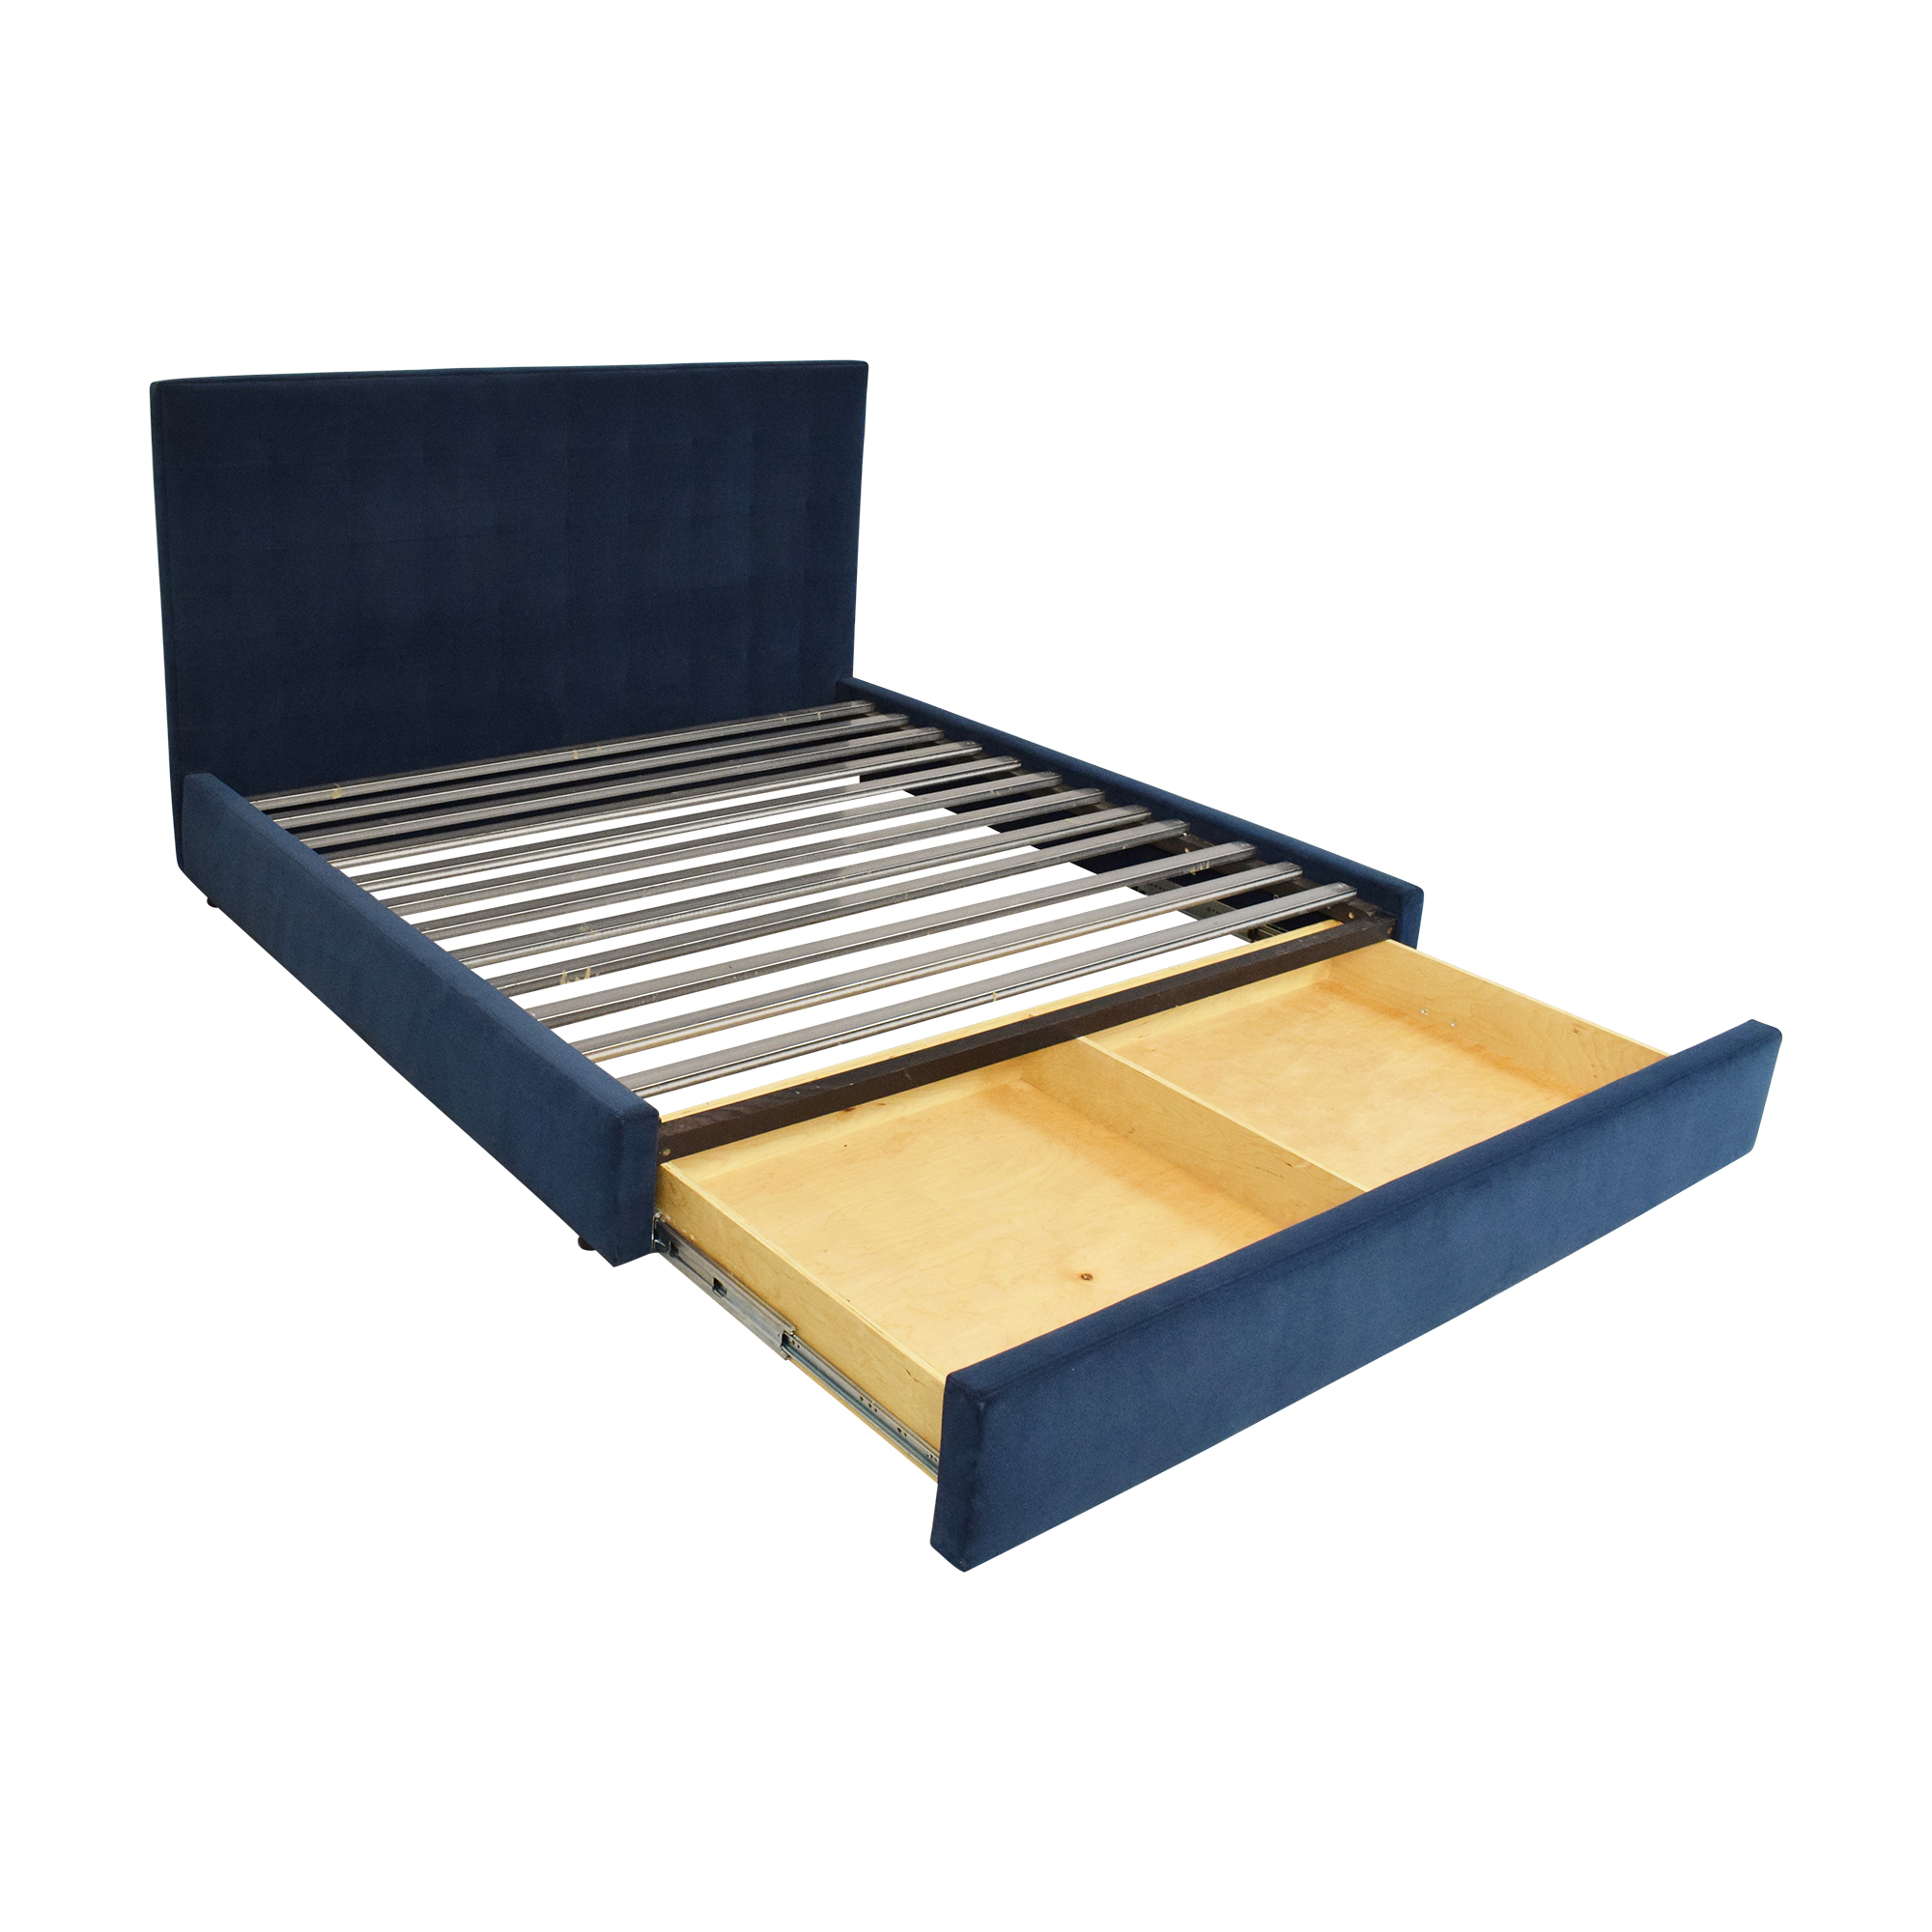 buy Room & Board Avery King Bed with Storage Drawer Room & Board